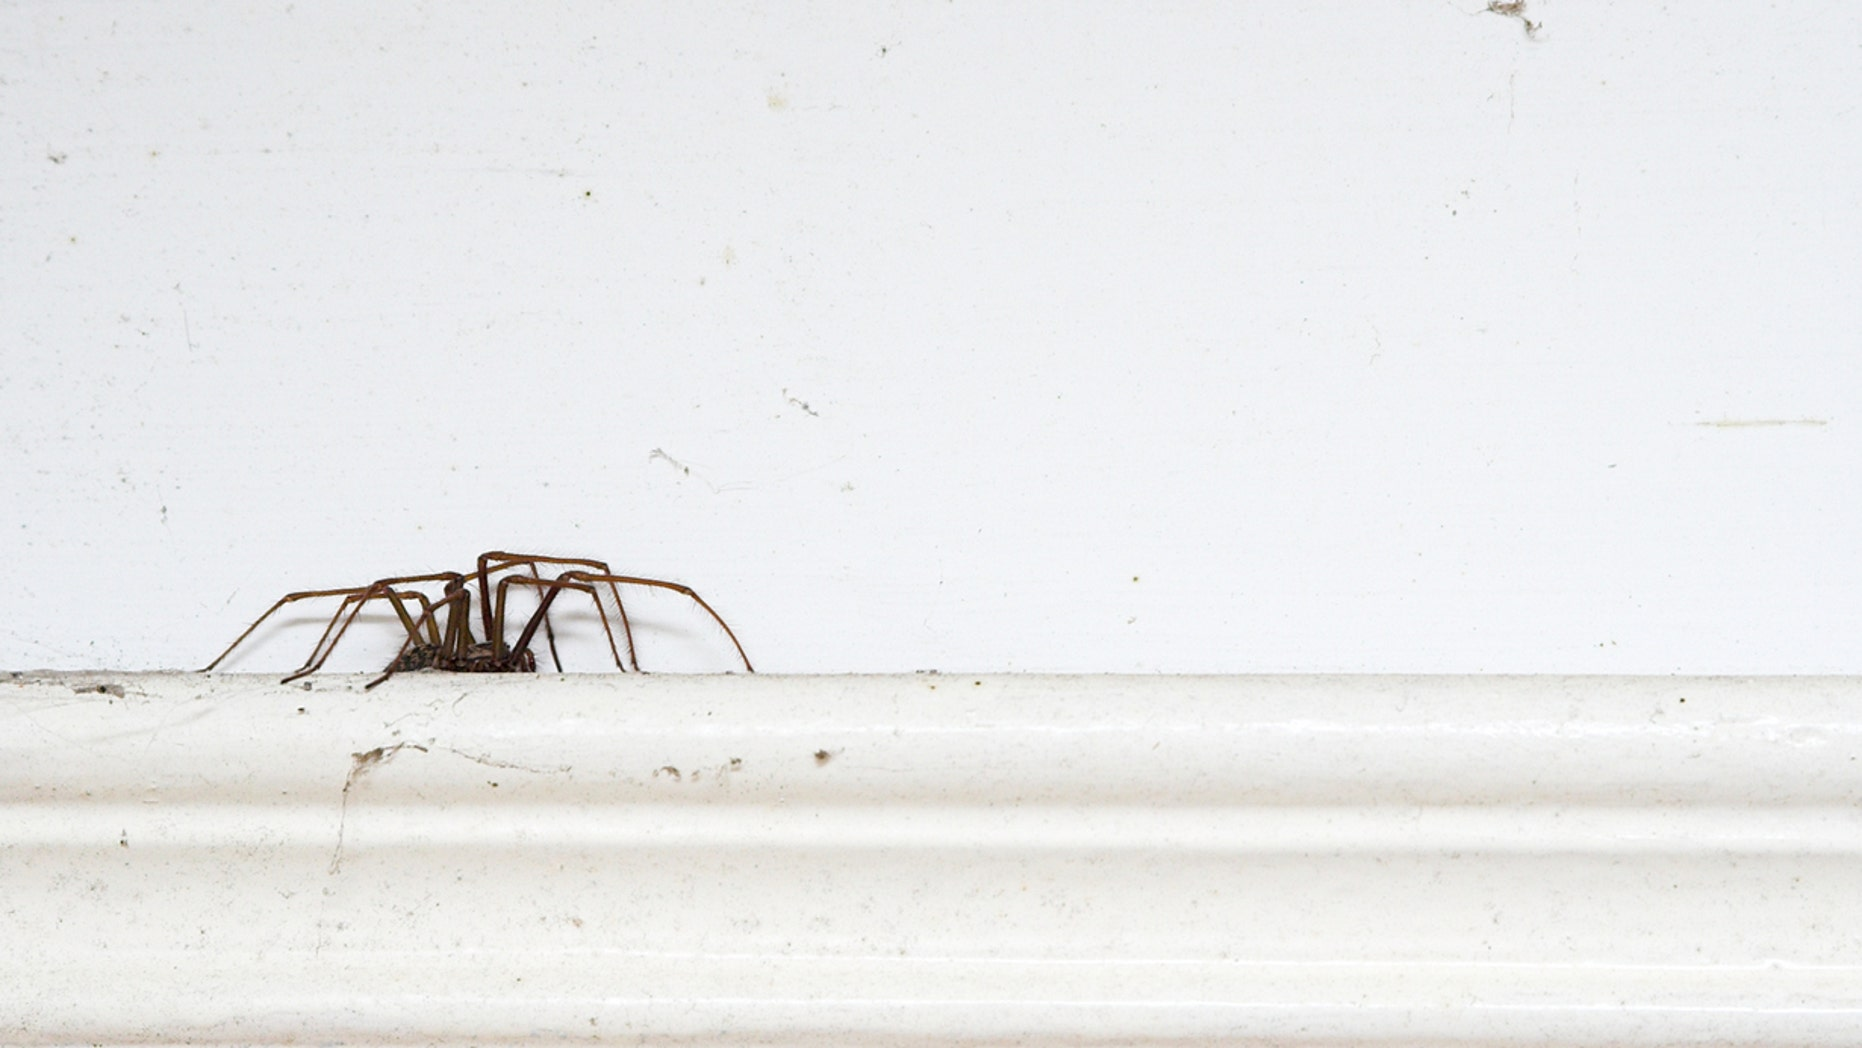 The spider, not pictured, was spotted by doctors at a nearby hospital.